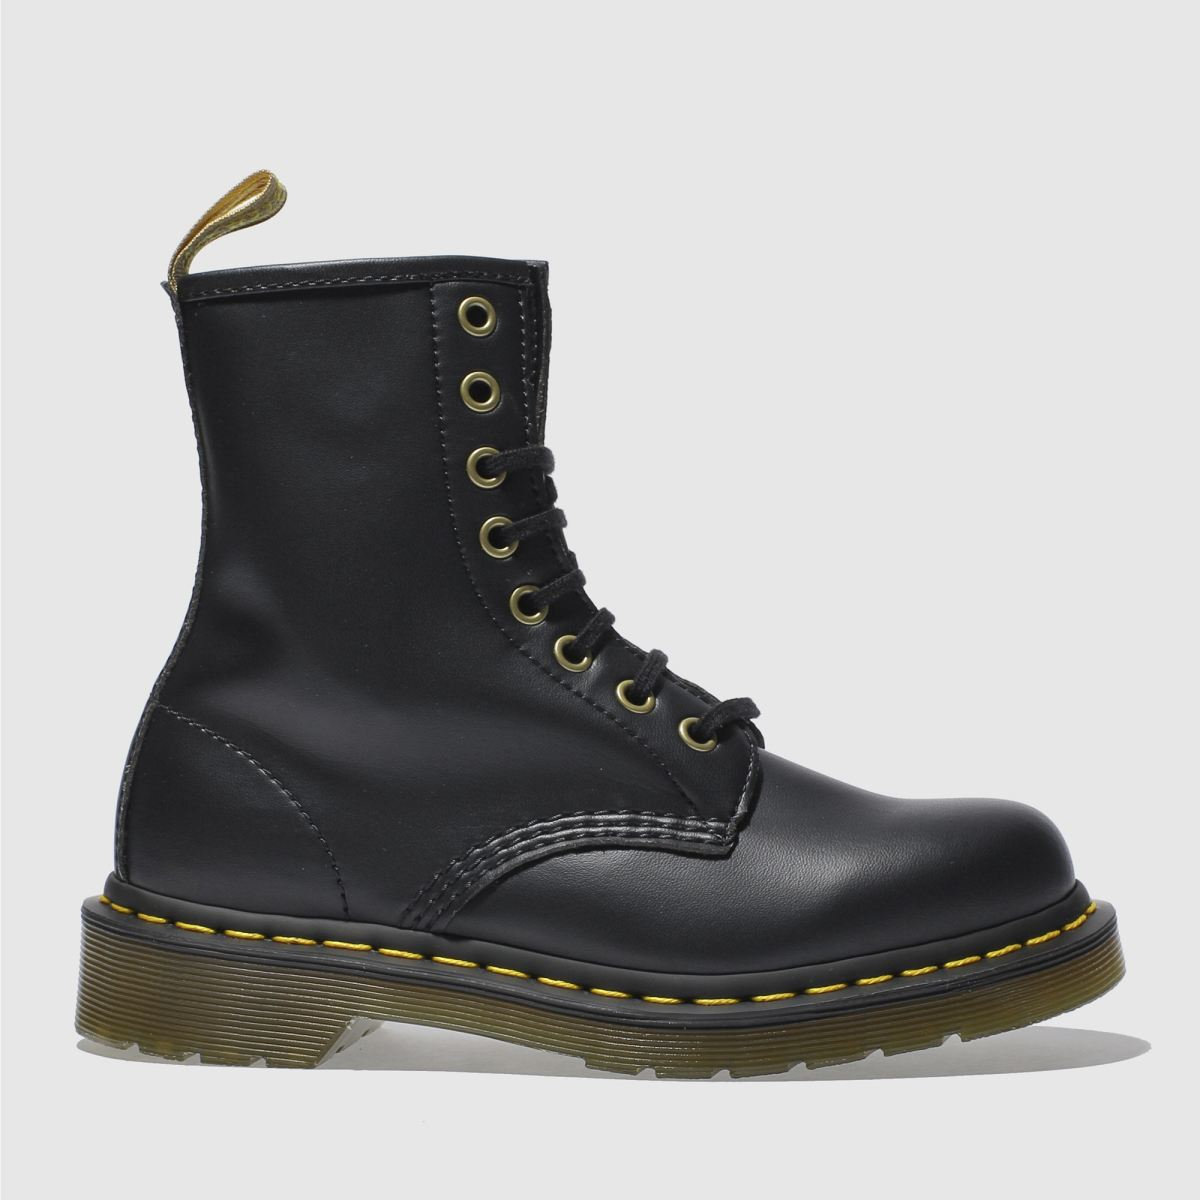 Dr Martens Black Vegan 1460 8 Eye Boots